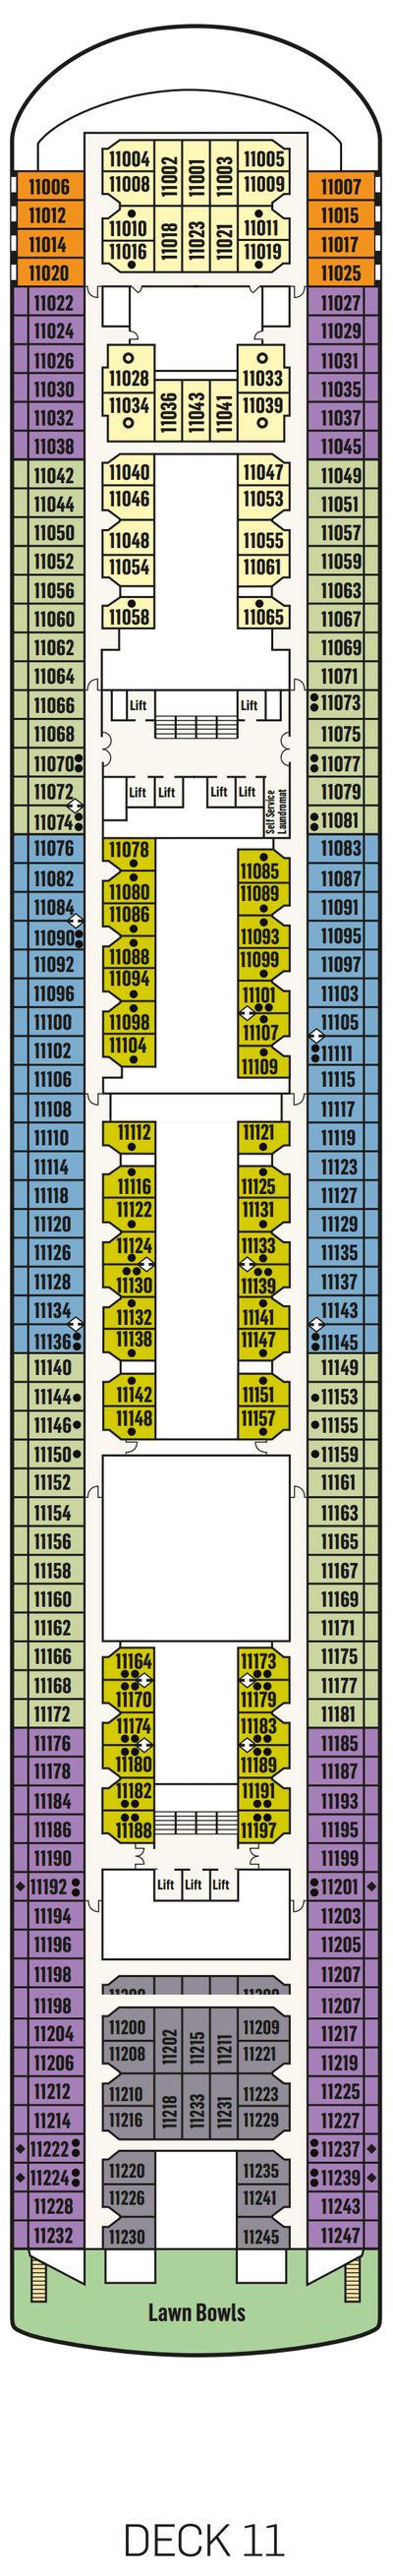 P&O - Pacific Explorer Deck 11 layout